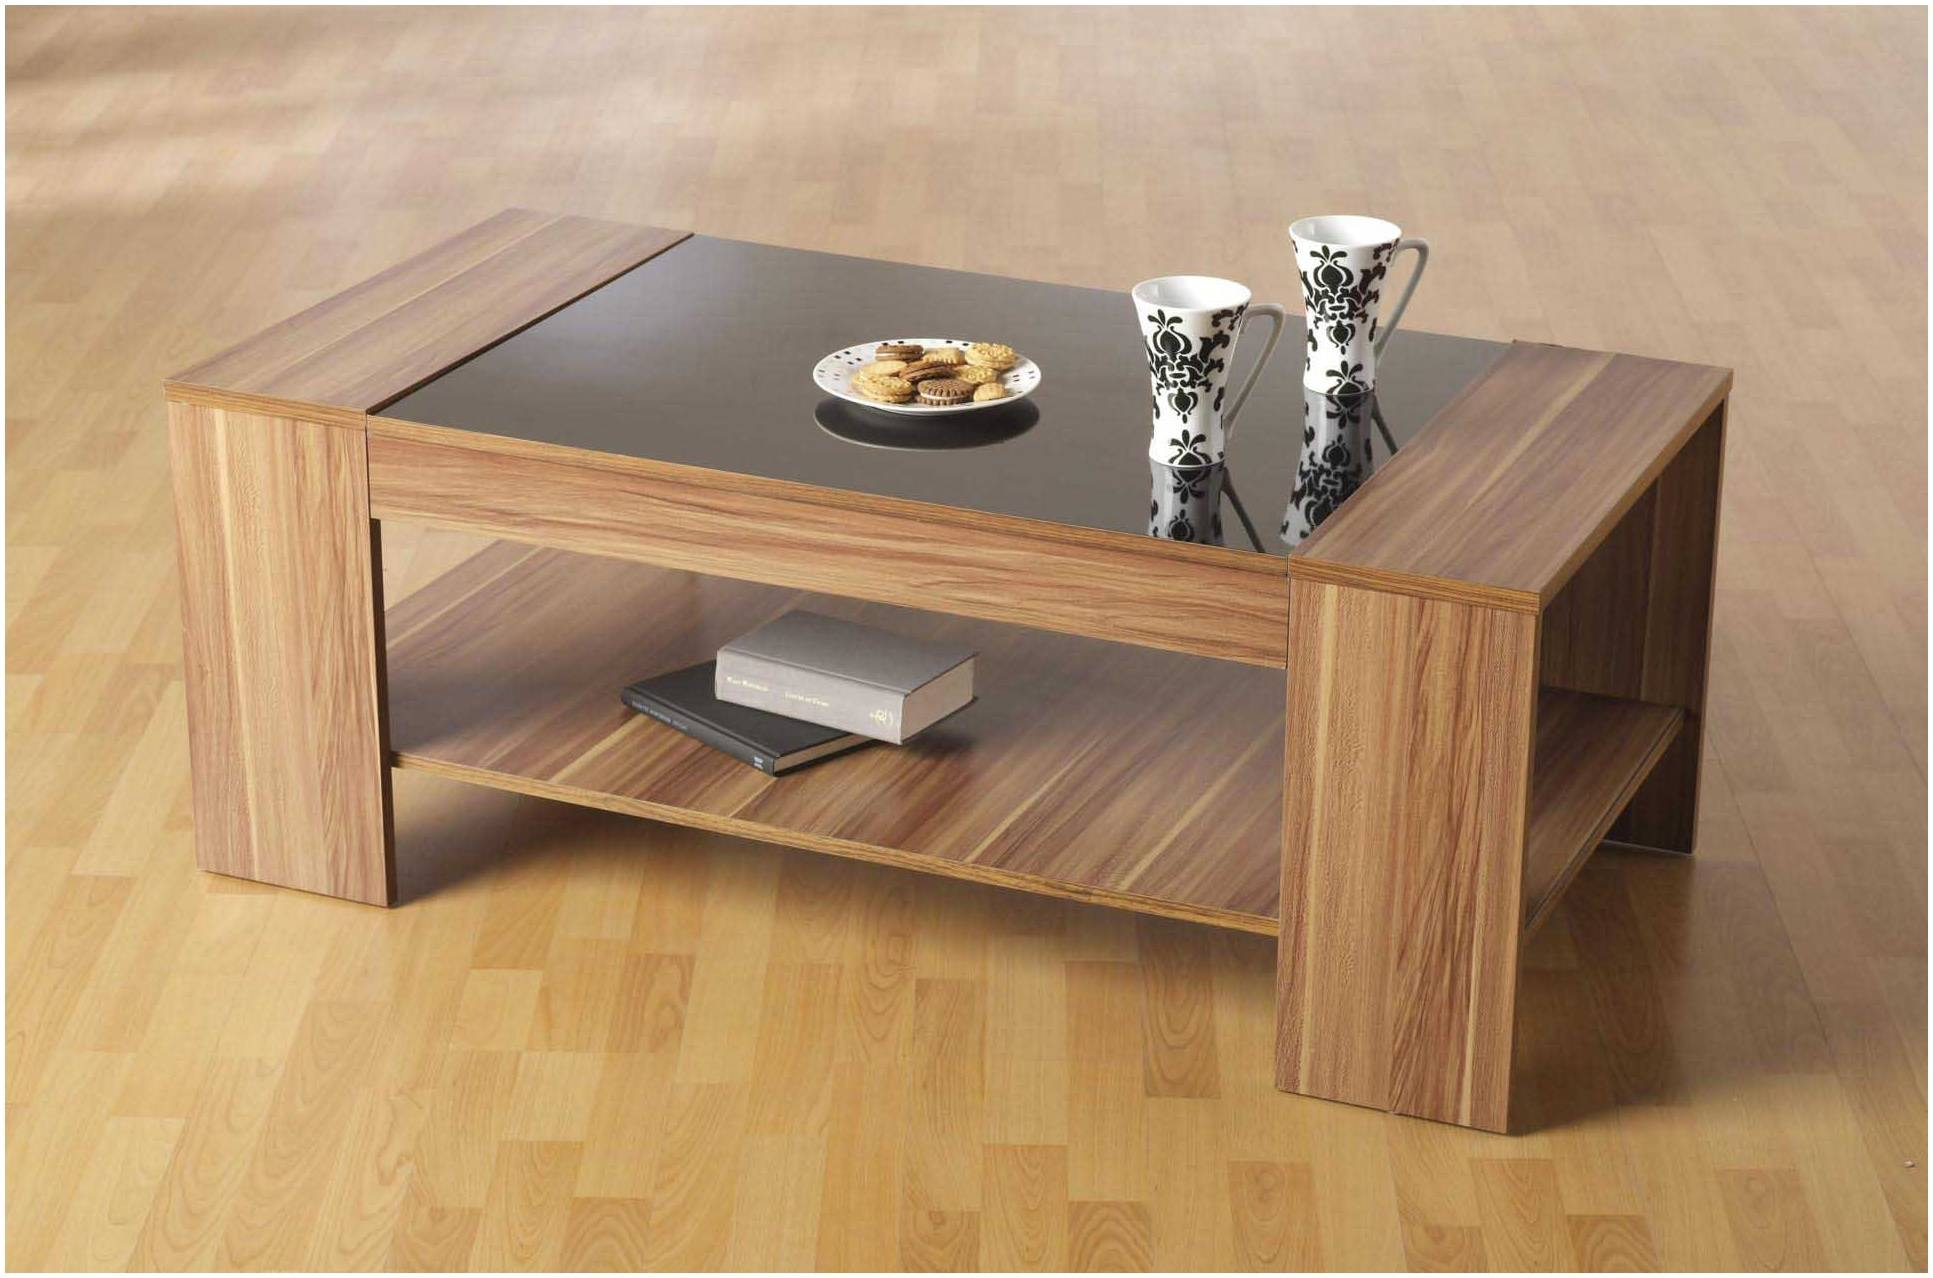 Glass Top Coffee Table Plans – Safeti regarding Wooden And Glass Coffee Tables (Image 22 of 30)